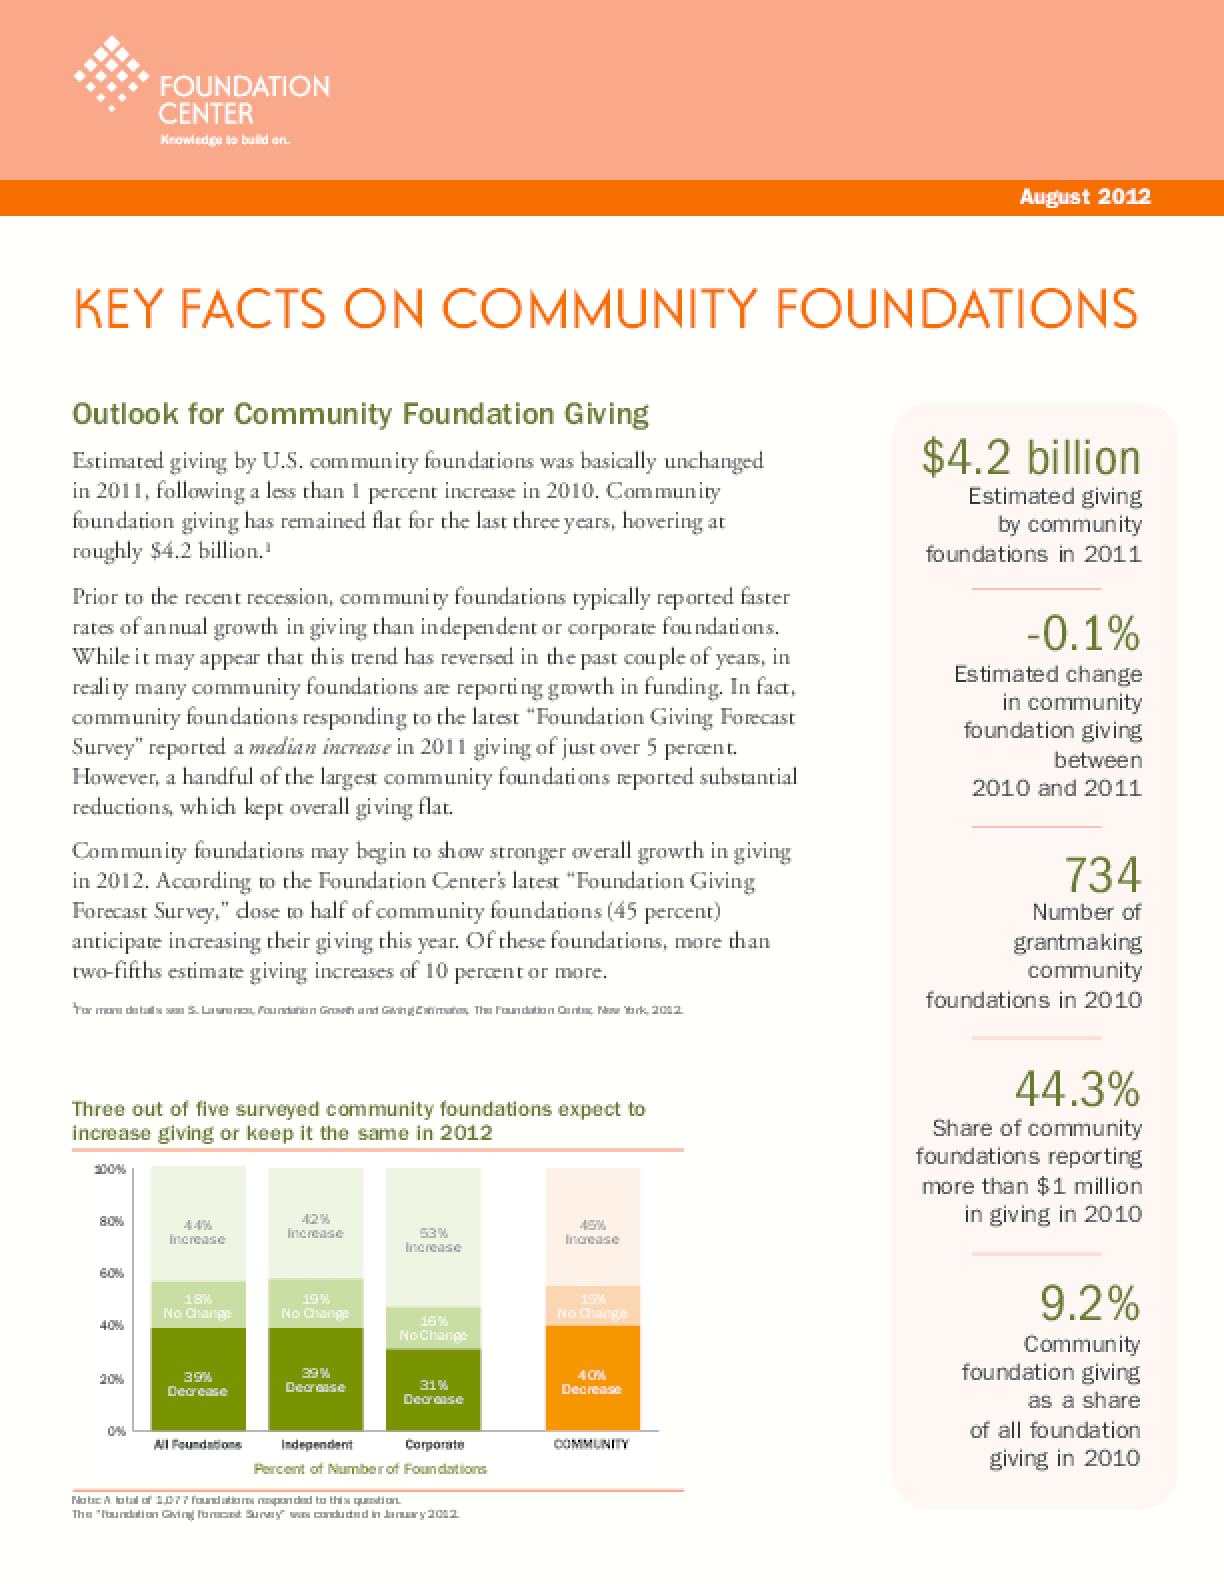 Key Facts on Community Foundations 2012